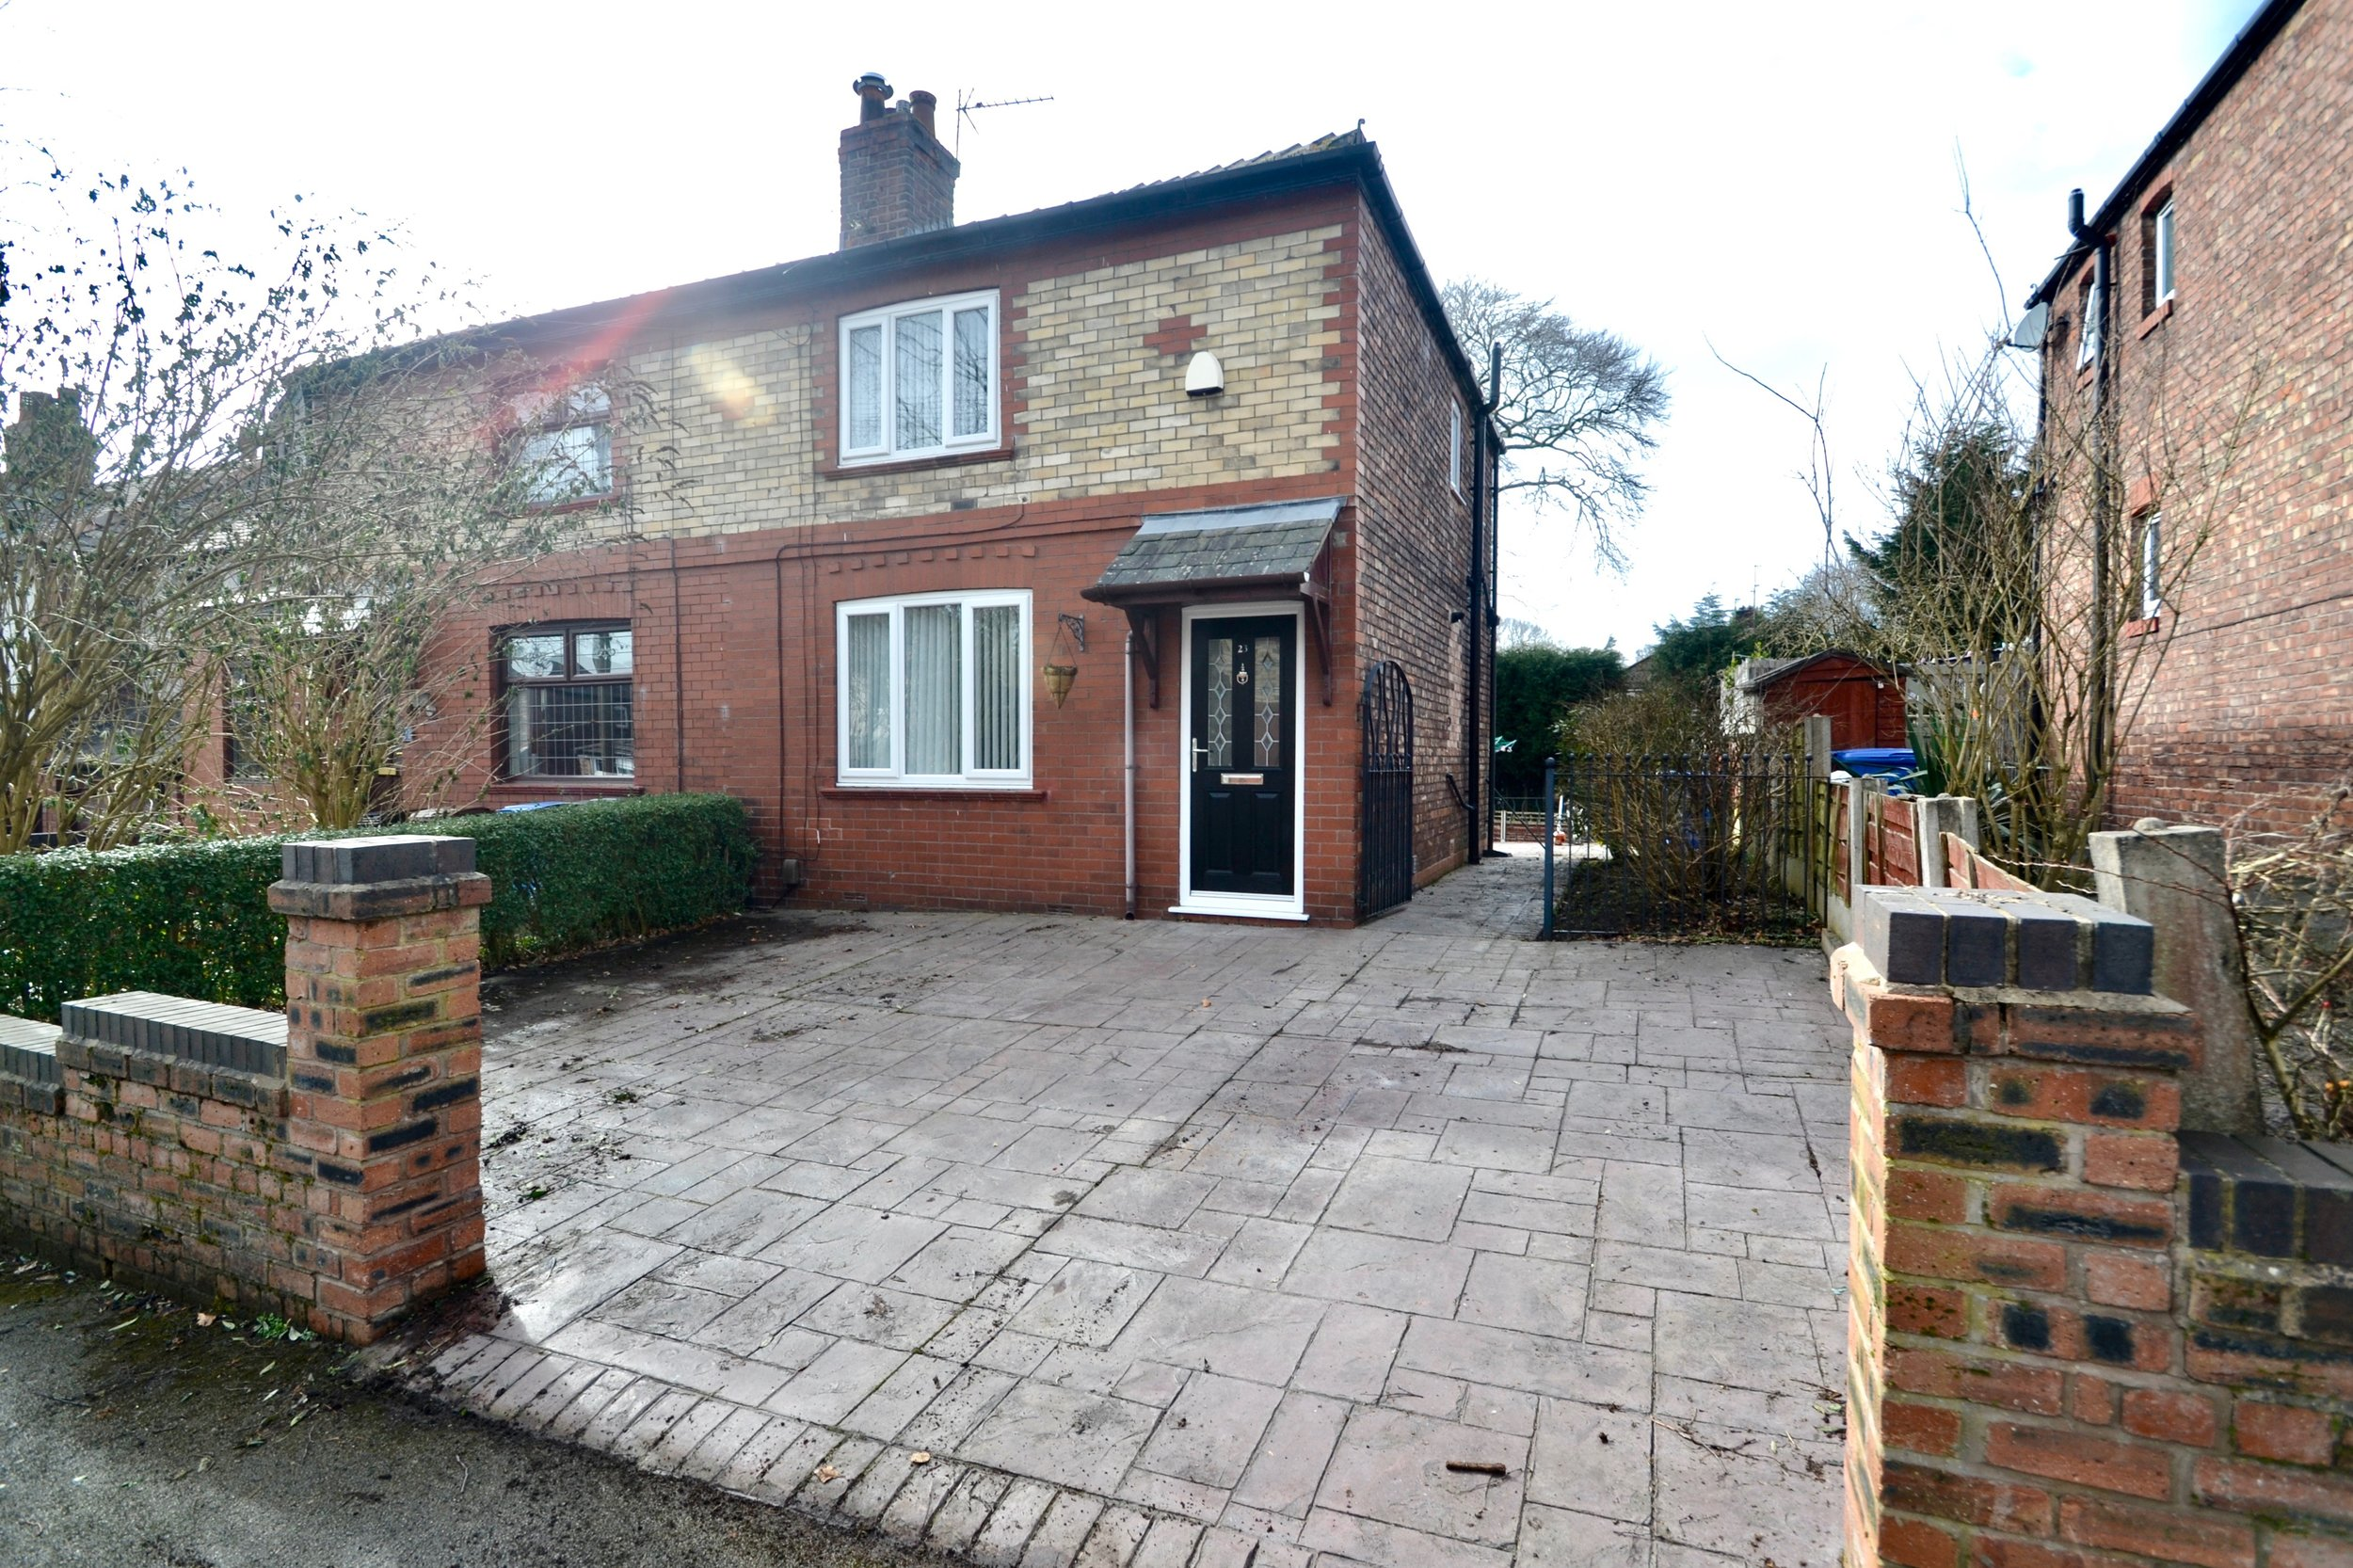 Heys Avenue | £7252 Bed - A magnificent presented 2 bedroom semi-detached unfurnished house centrally located in Romiley